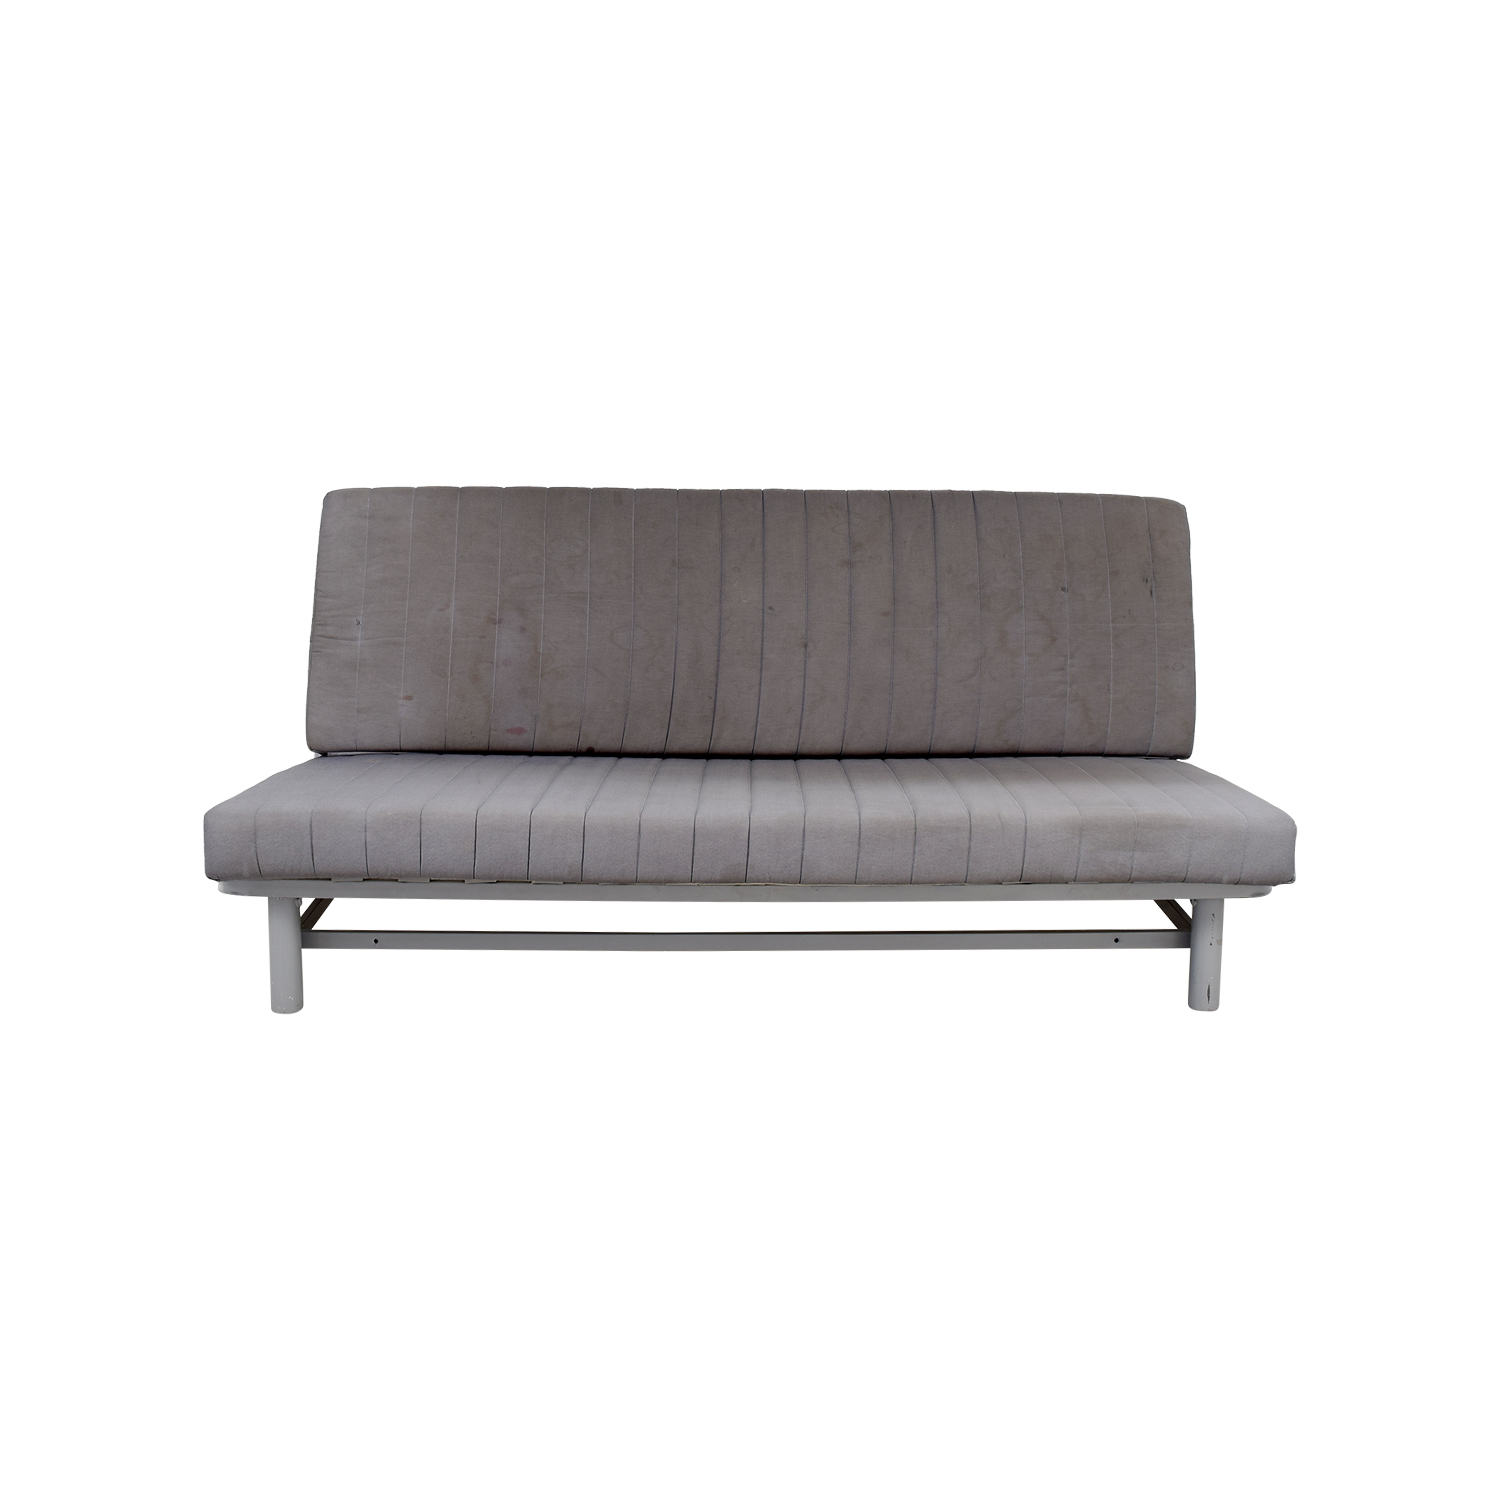 low priced b6a46 b091d 90% OFF - IKEA IKEA Grey Sofa Bed / Sofas